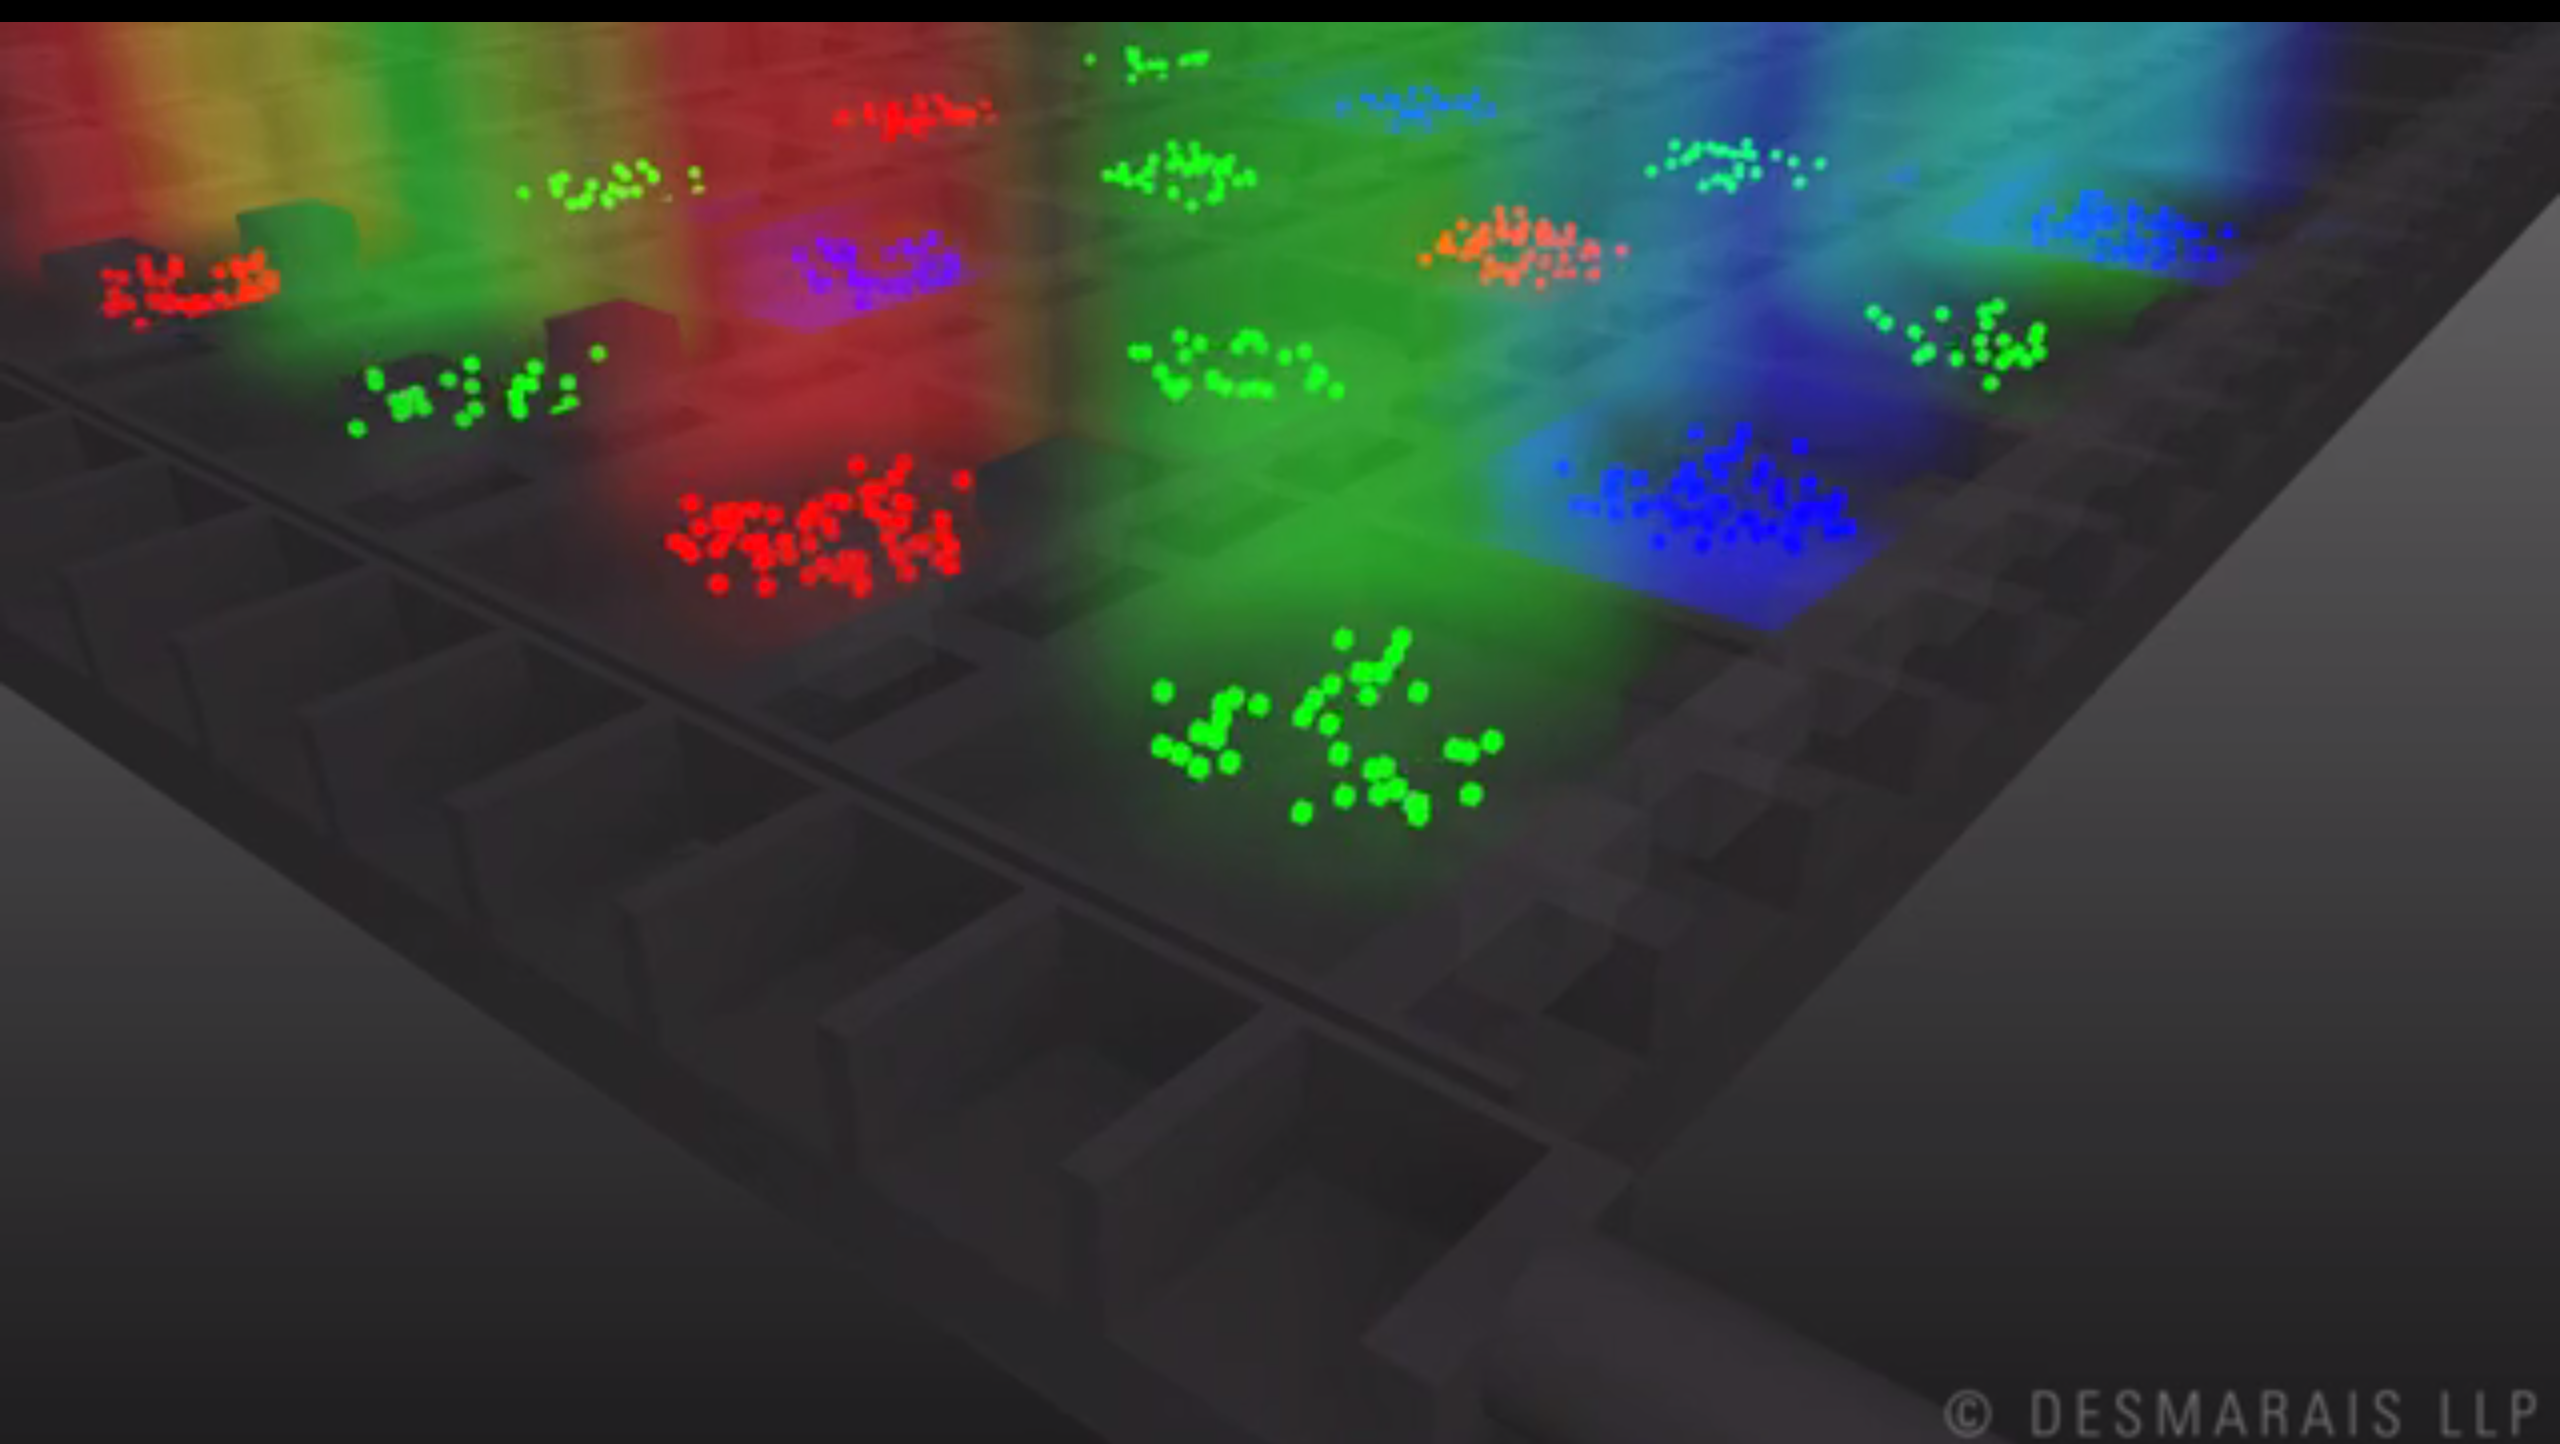 These Simple Animations Show How Digital Camera Sensors Work